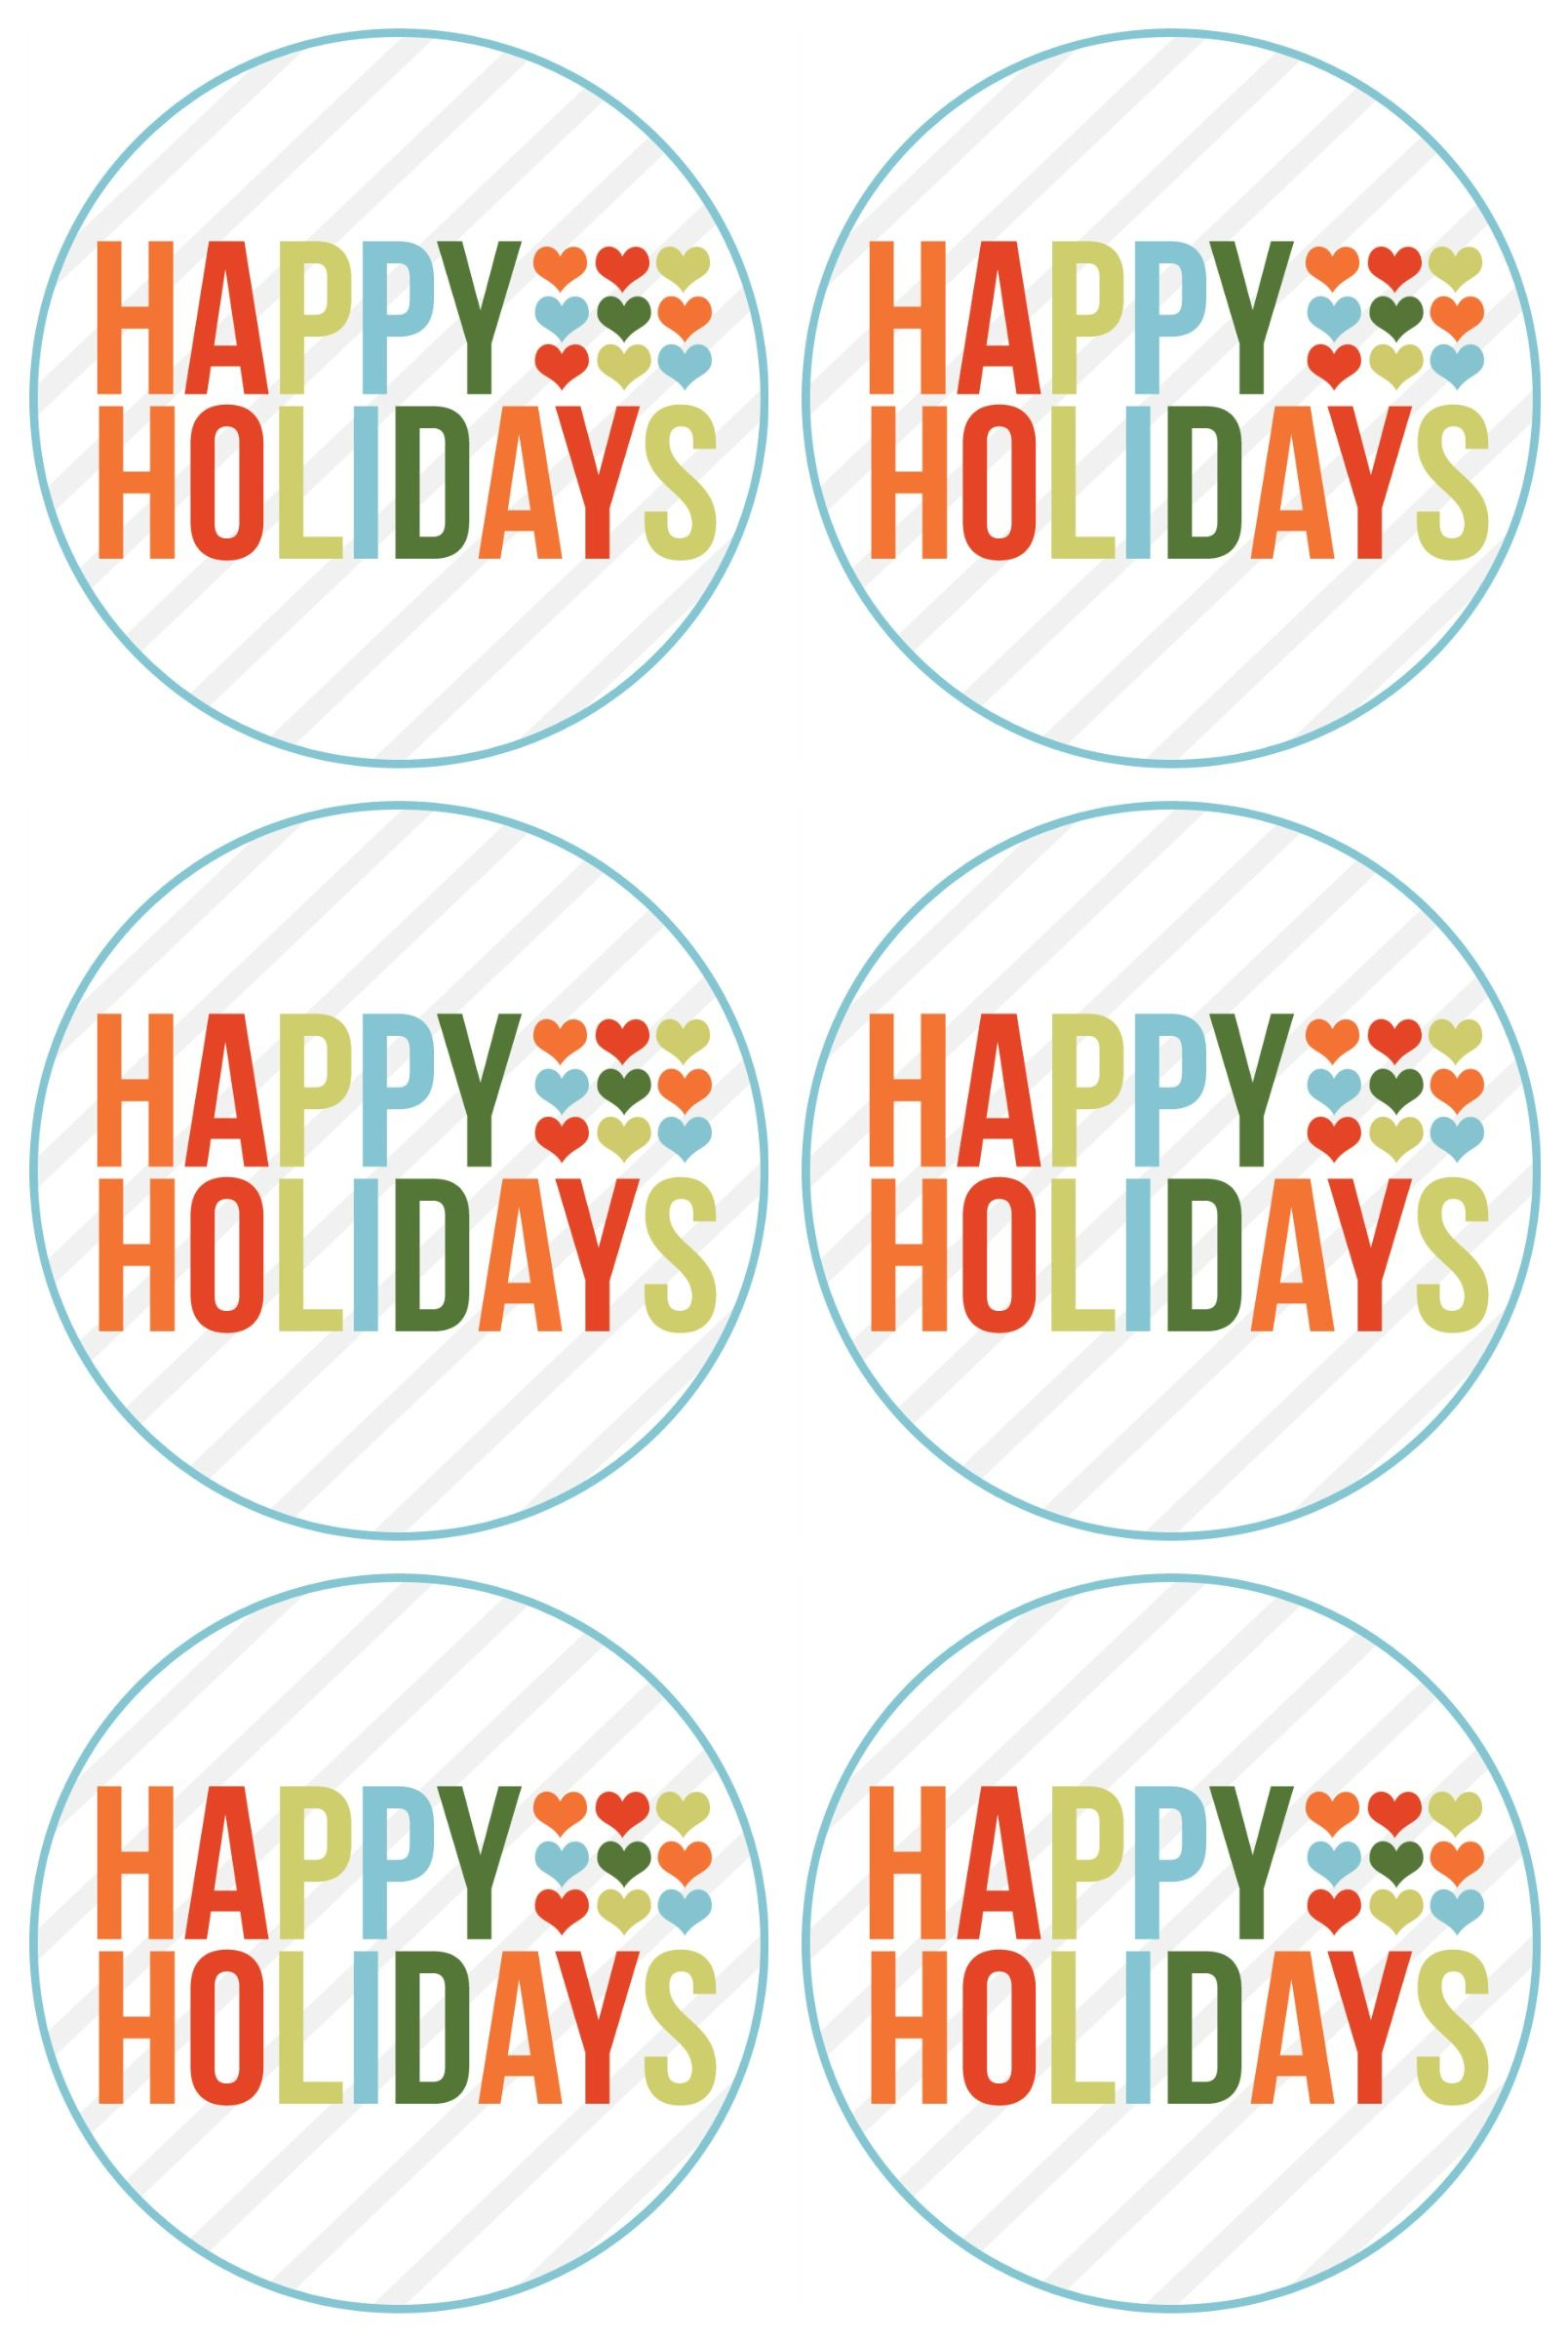 photograph regarding Holiday Tags Printable referred to as delighted holiday seasons totally free printable (rejoin Delighted Holiday seasons and